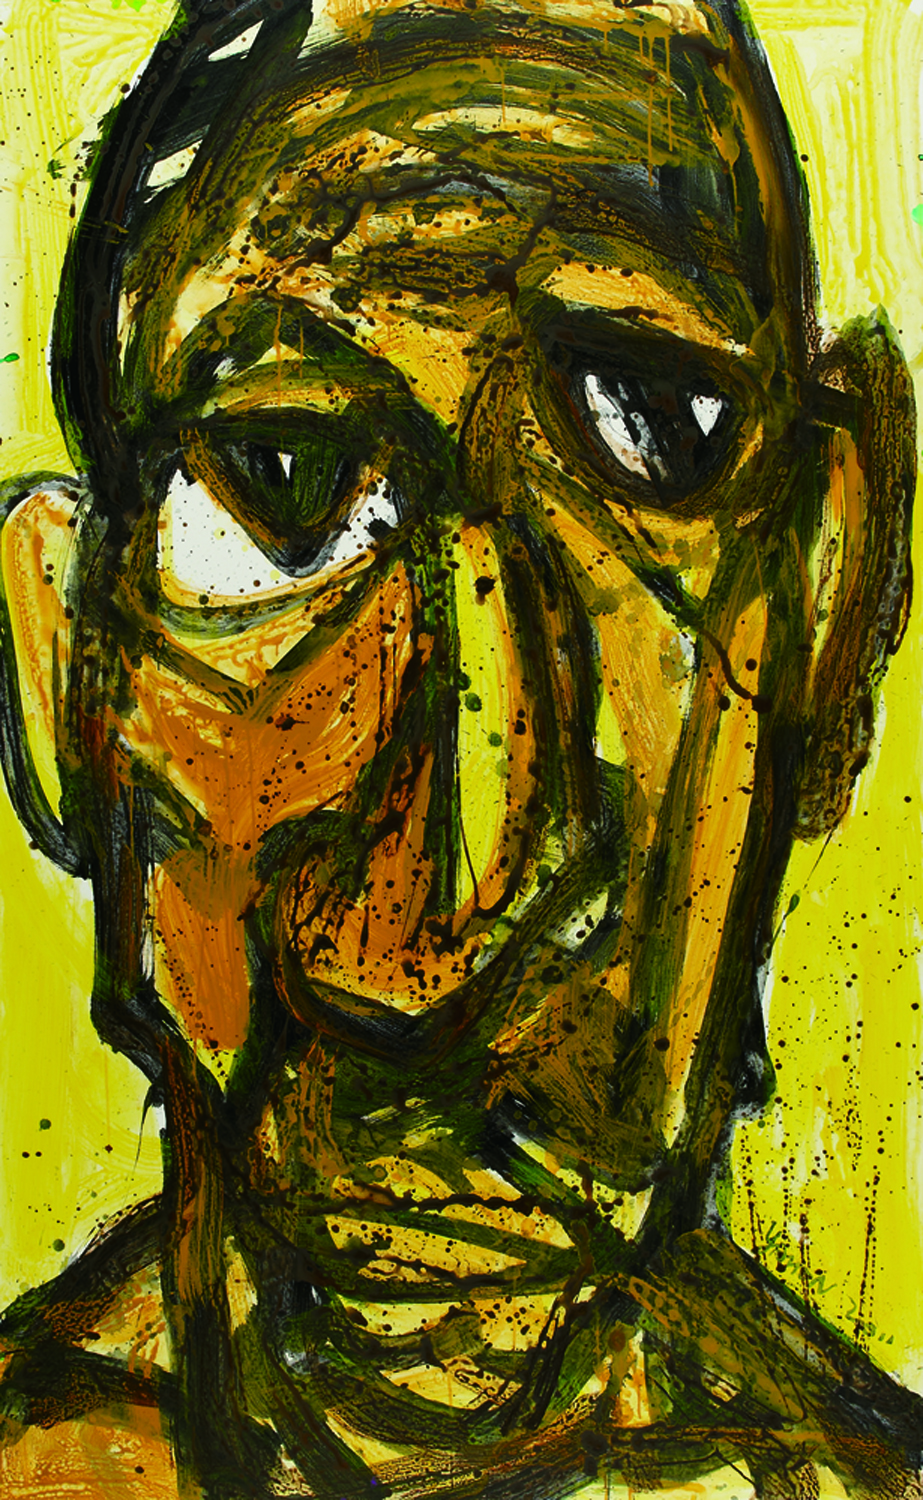 面對面 Face To Face 264x151cm 2011 壓克力‧畫布  Acrylic on canvas(4).jpg